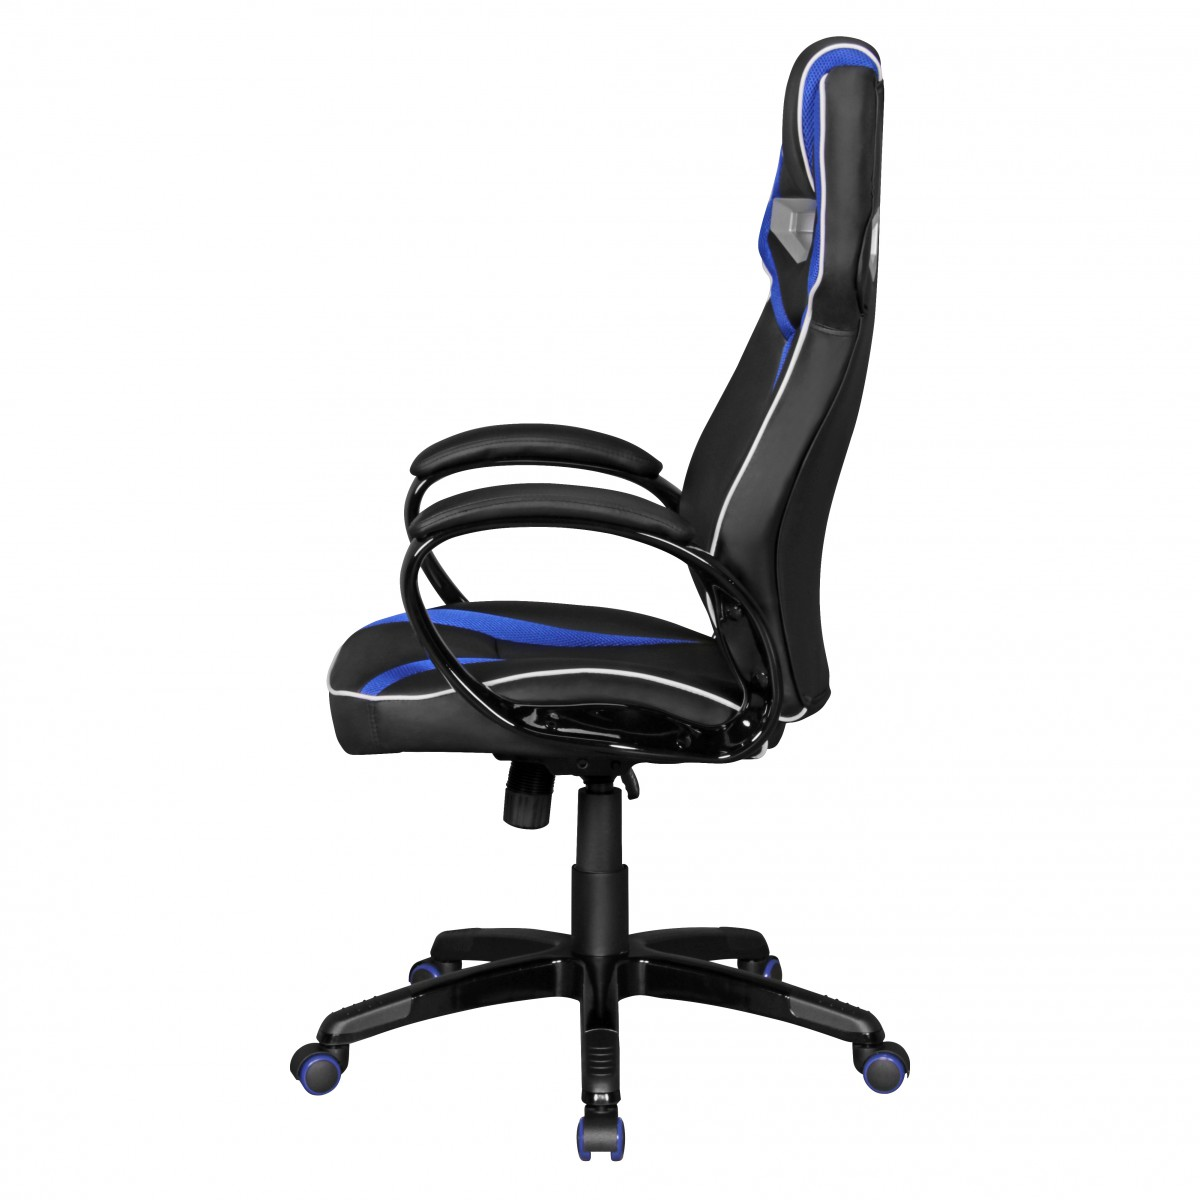 Amstyle Burostuhl Gamestar Schwarz Blau Gaming Stuhl Gamerstuhl Racing Chair